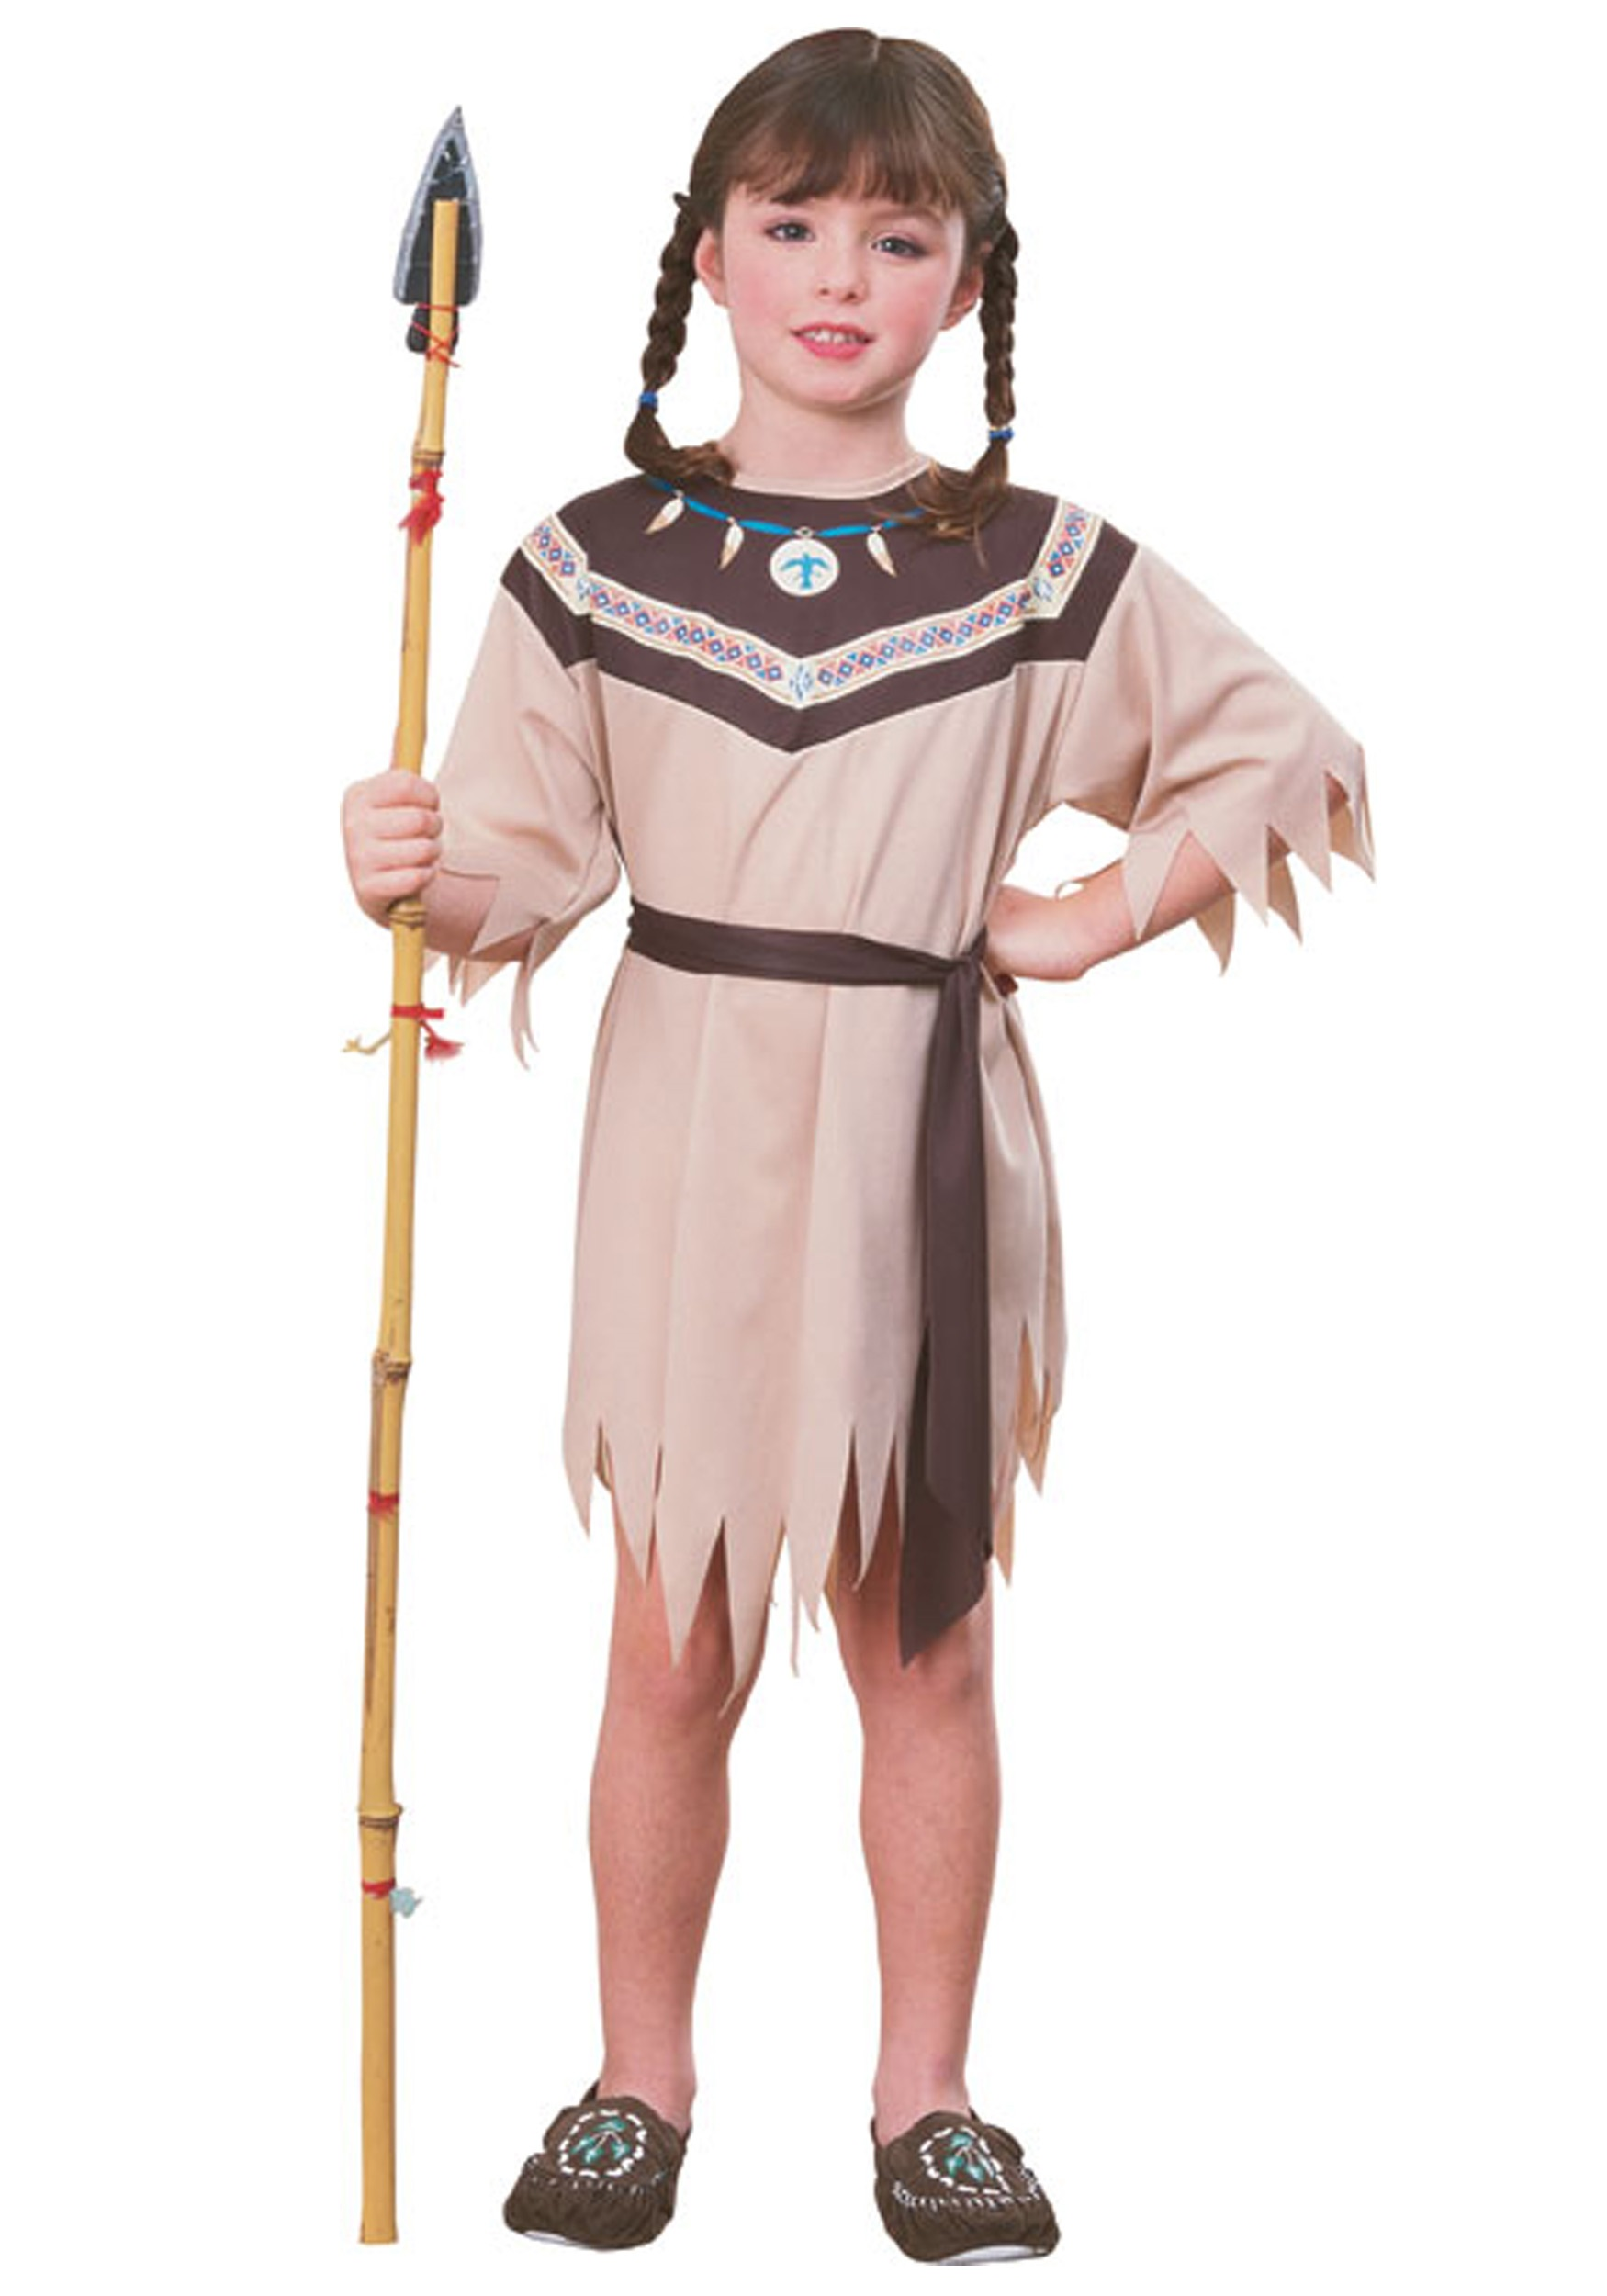 Native american costumes halloweencostumes indian girl native american costume solutioingenieria Images